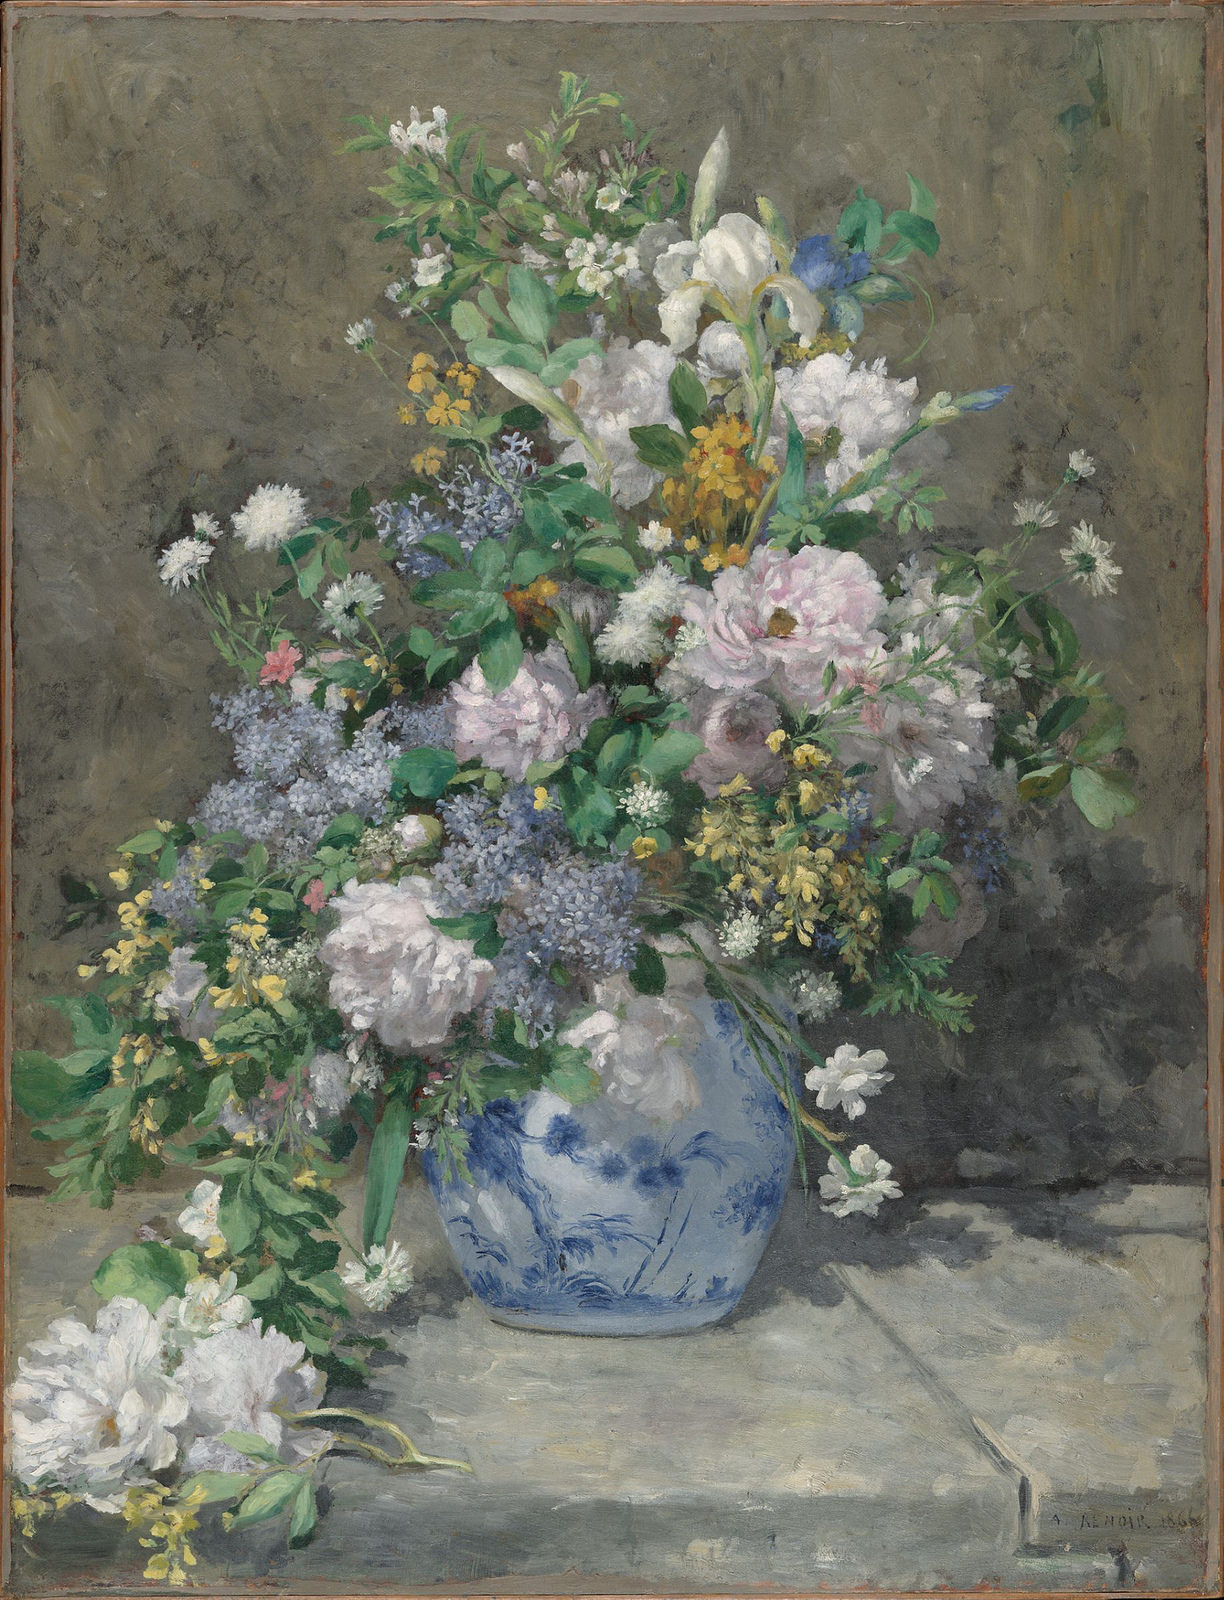 Spring Bouquet by Pierre-Auguste Renoir, 1866